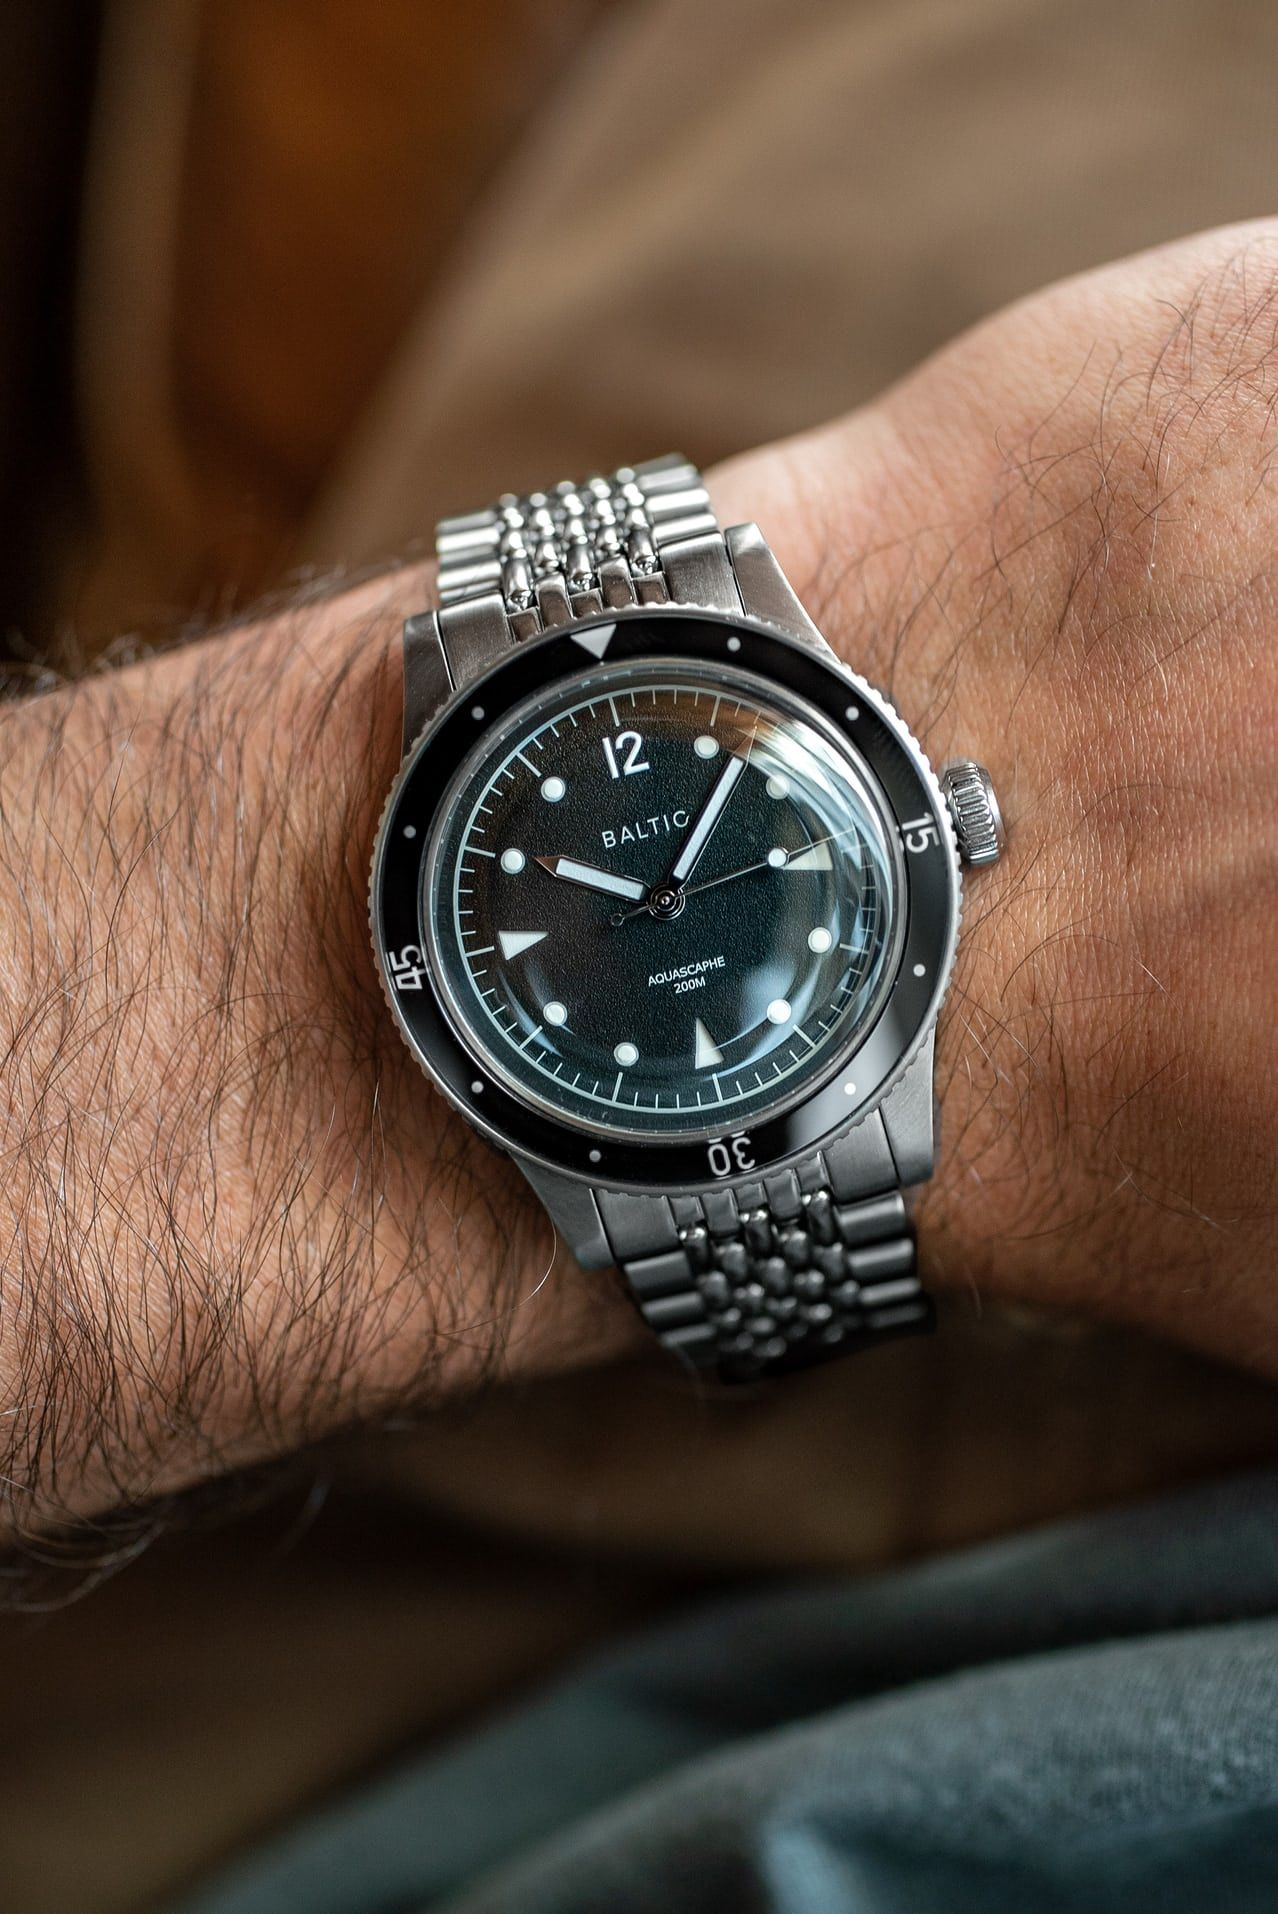 Hands-On: The Baltic Aquascaphe Diver - HODINKEE